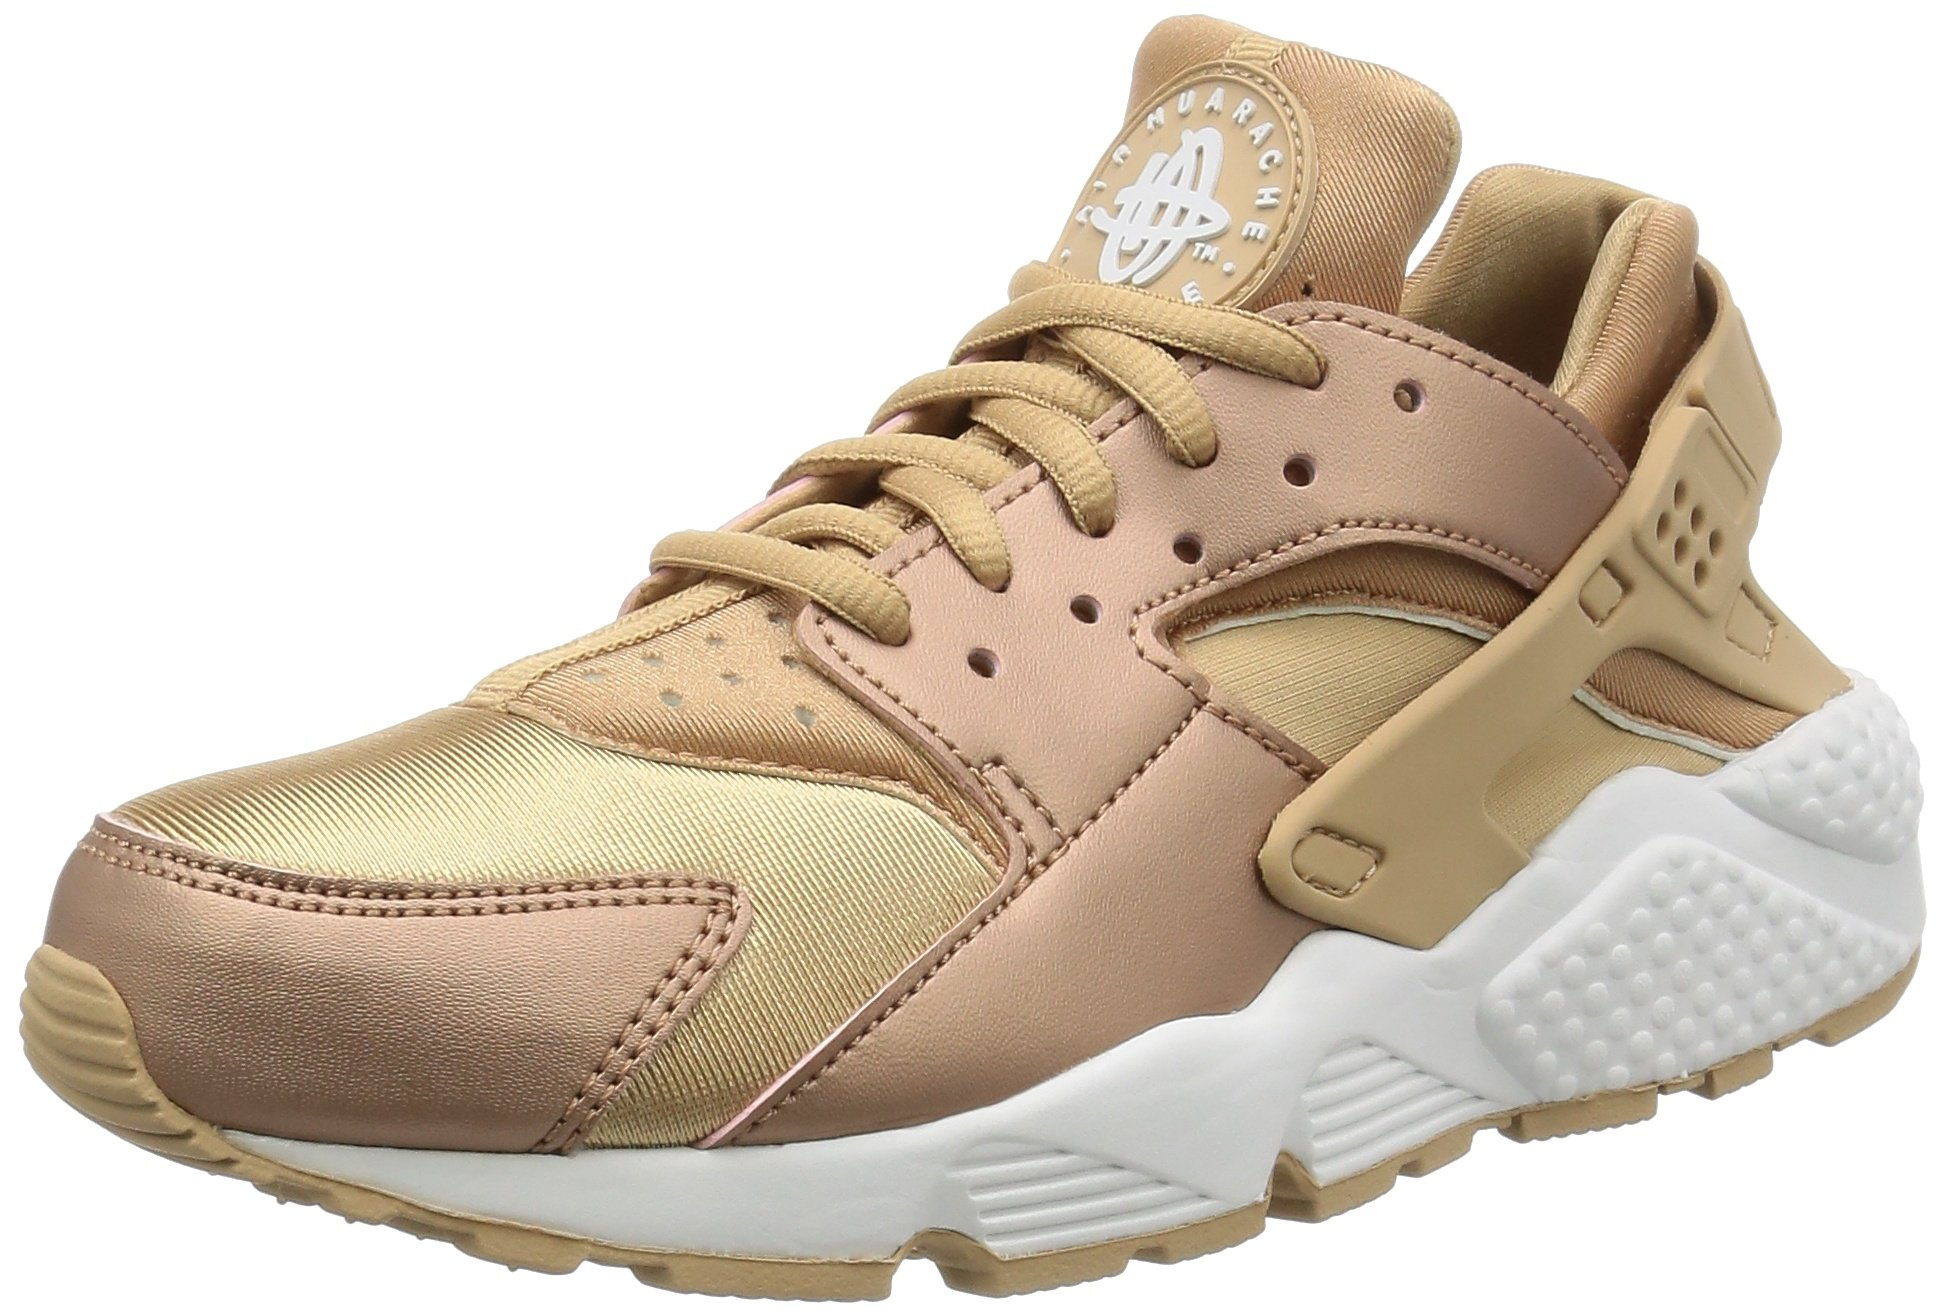 2adc6595dd3 Galleon - NIKE Air Huarache Run SE Women s Shoes Metallic Red Bronze Elm  859429-900 (6 B(M) US)